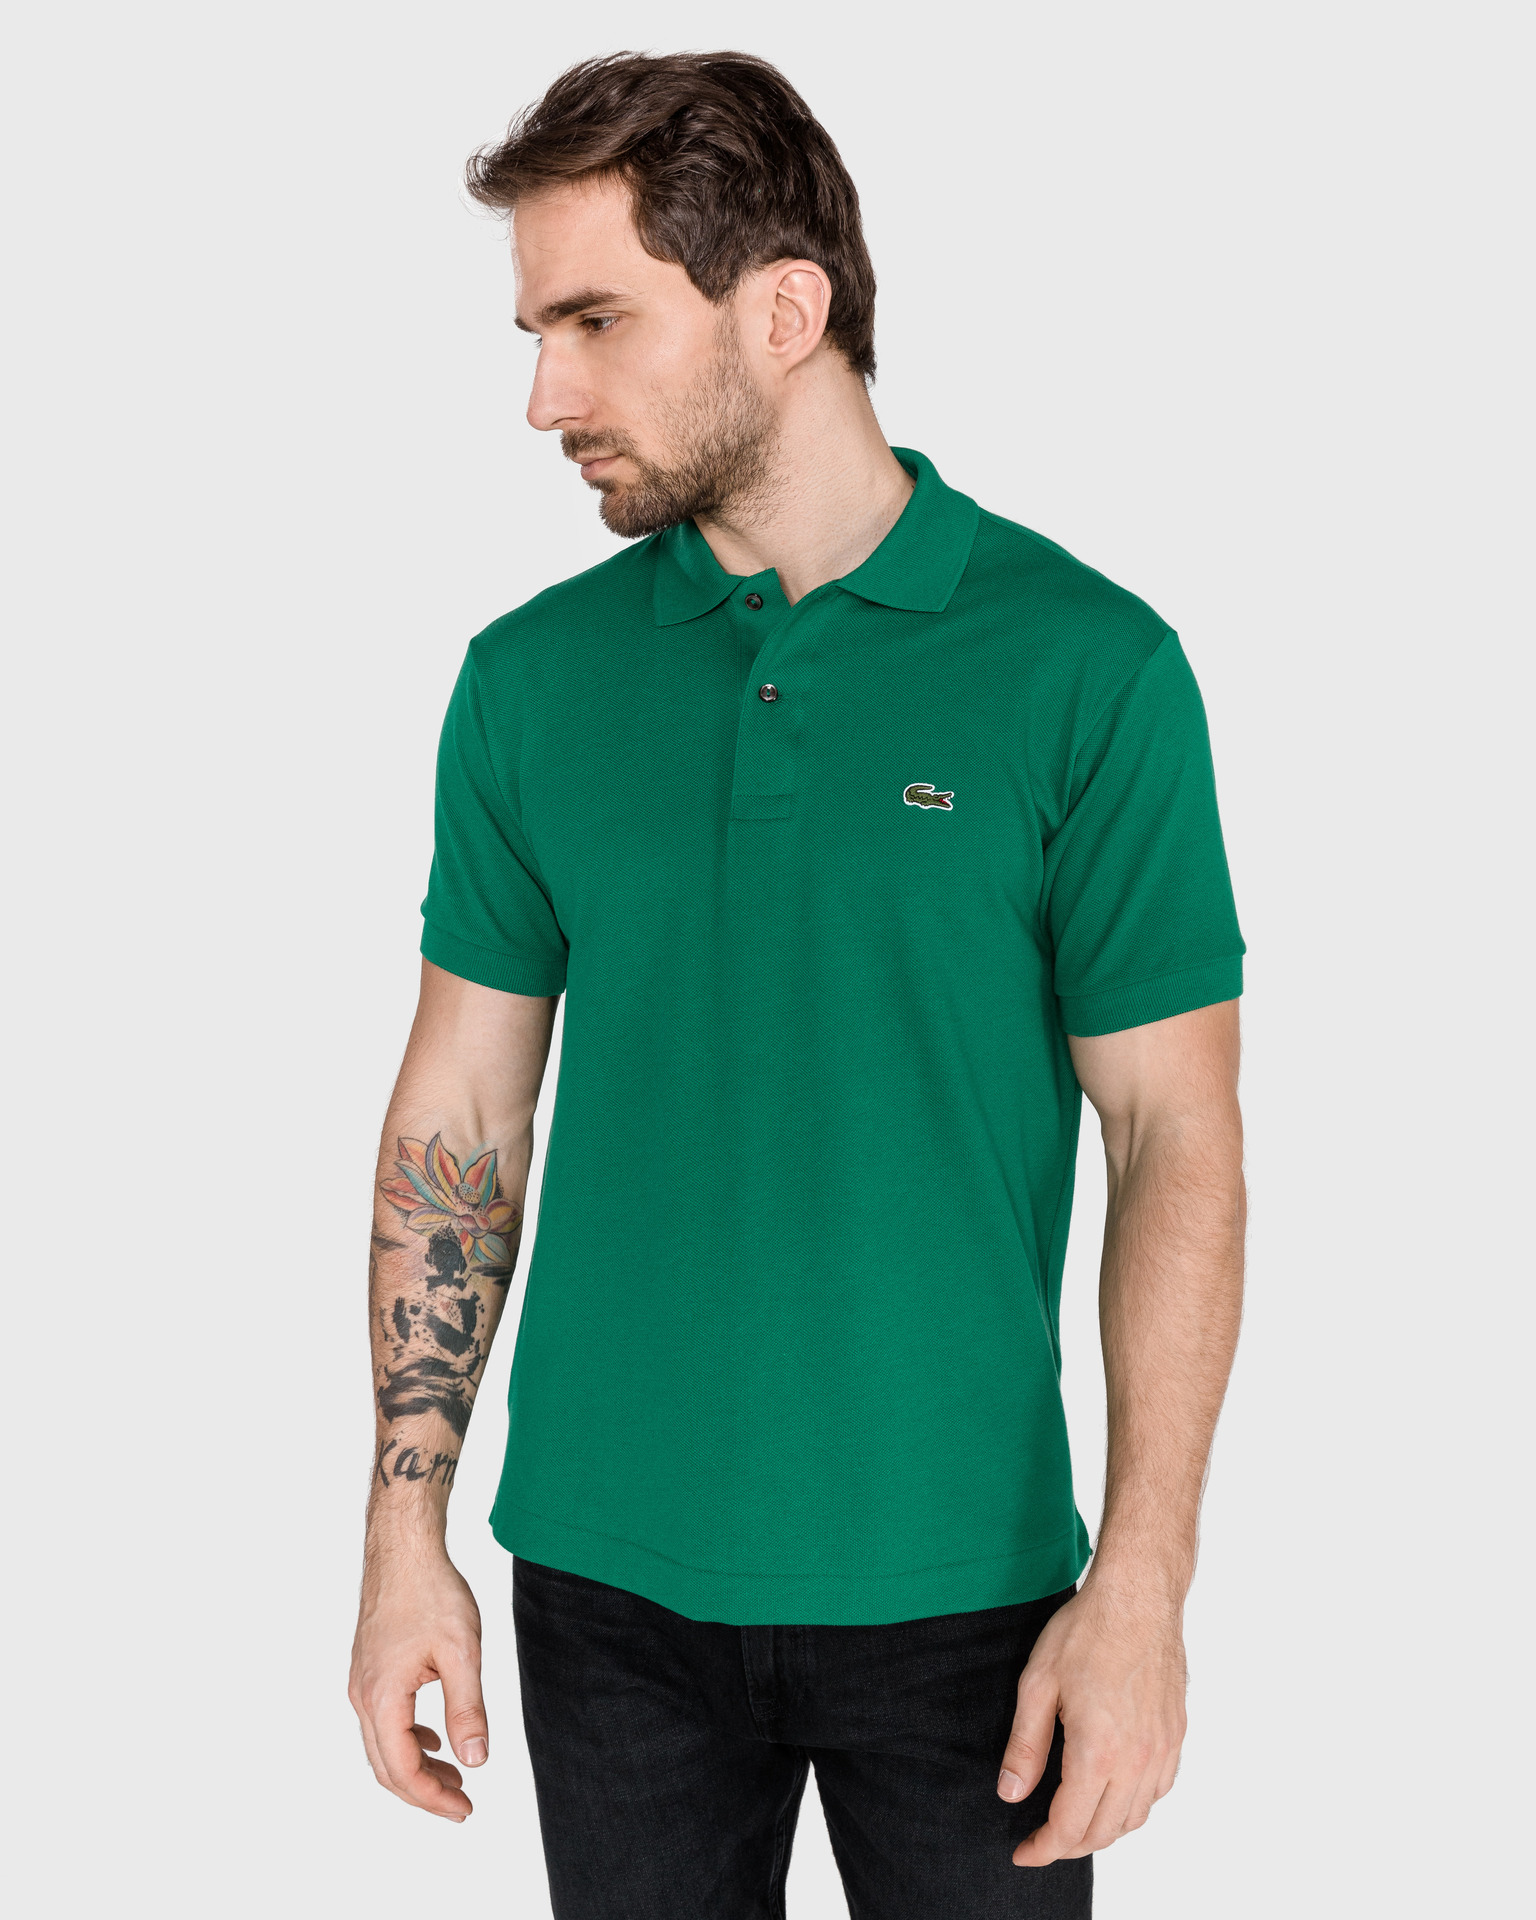 new design release info on retail prices Lacoste - Polo Shirt Bibloo.com